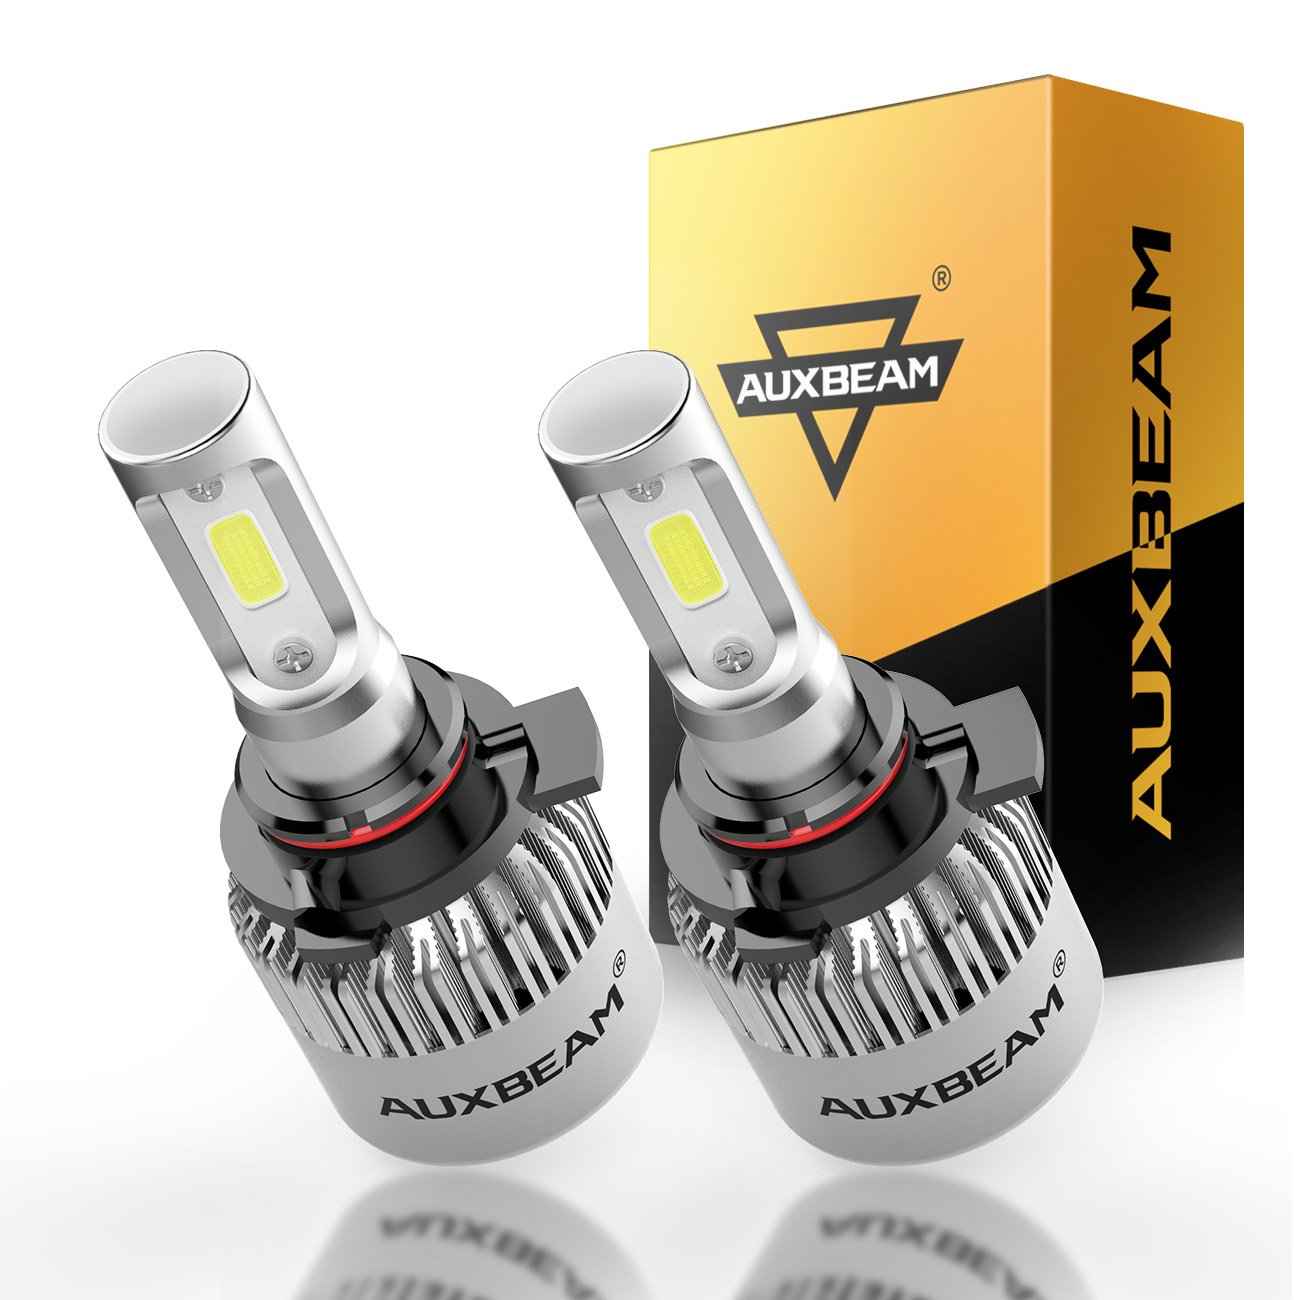 Auxbeam 9005 Led Headlights F S2 Series With 2pcs H16 2504 Ps24w Adapter For Fog Lights Drl Relay Wiring Harness Ebay Hb3 H10 9145 Headlight Bulbs Conversion Kits 72w 8000lm Bridgelux Cob Chips